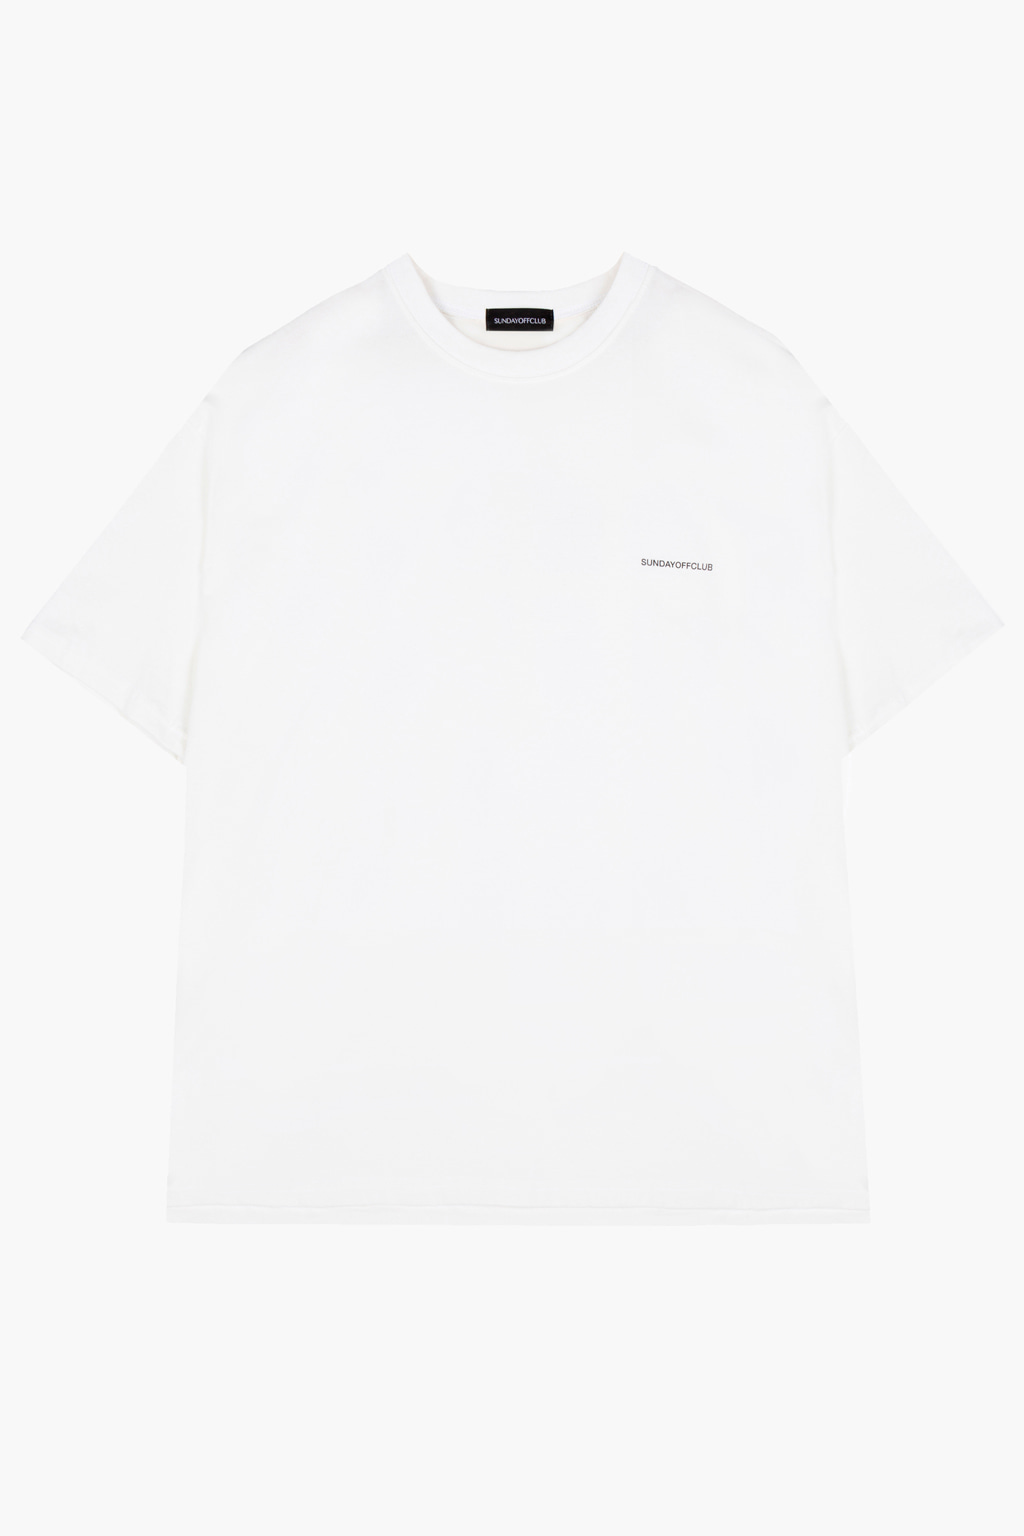 Resistance T-shirt - white